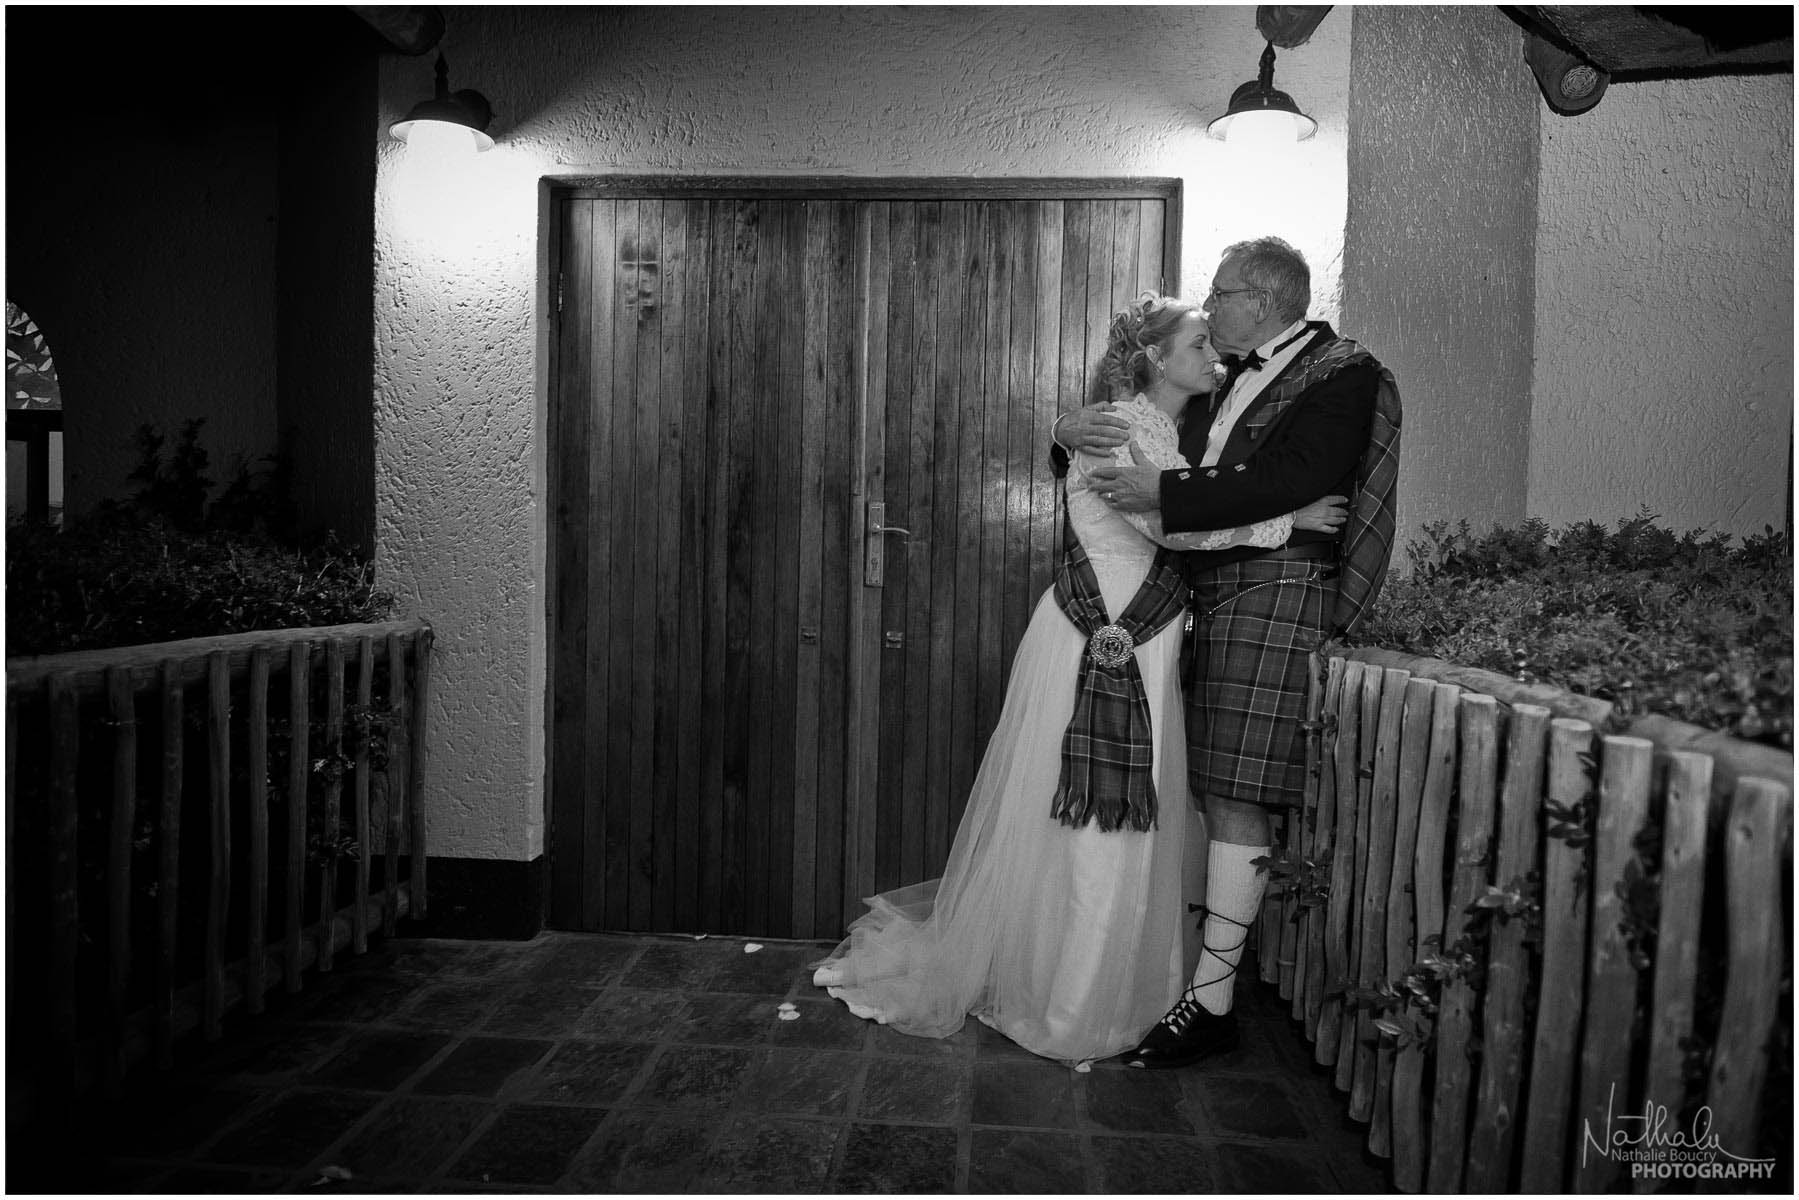 Nathalie Boucry Photography | Wedding | Deidre and Lister 38